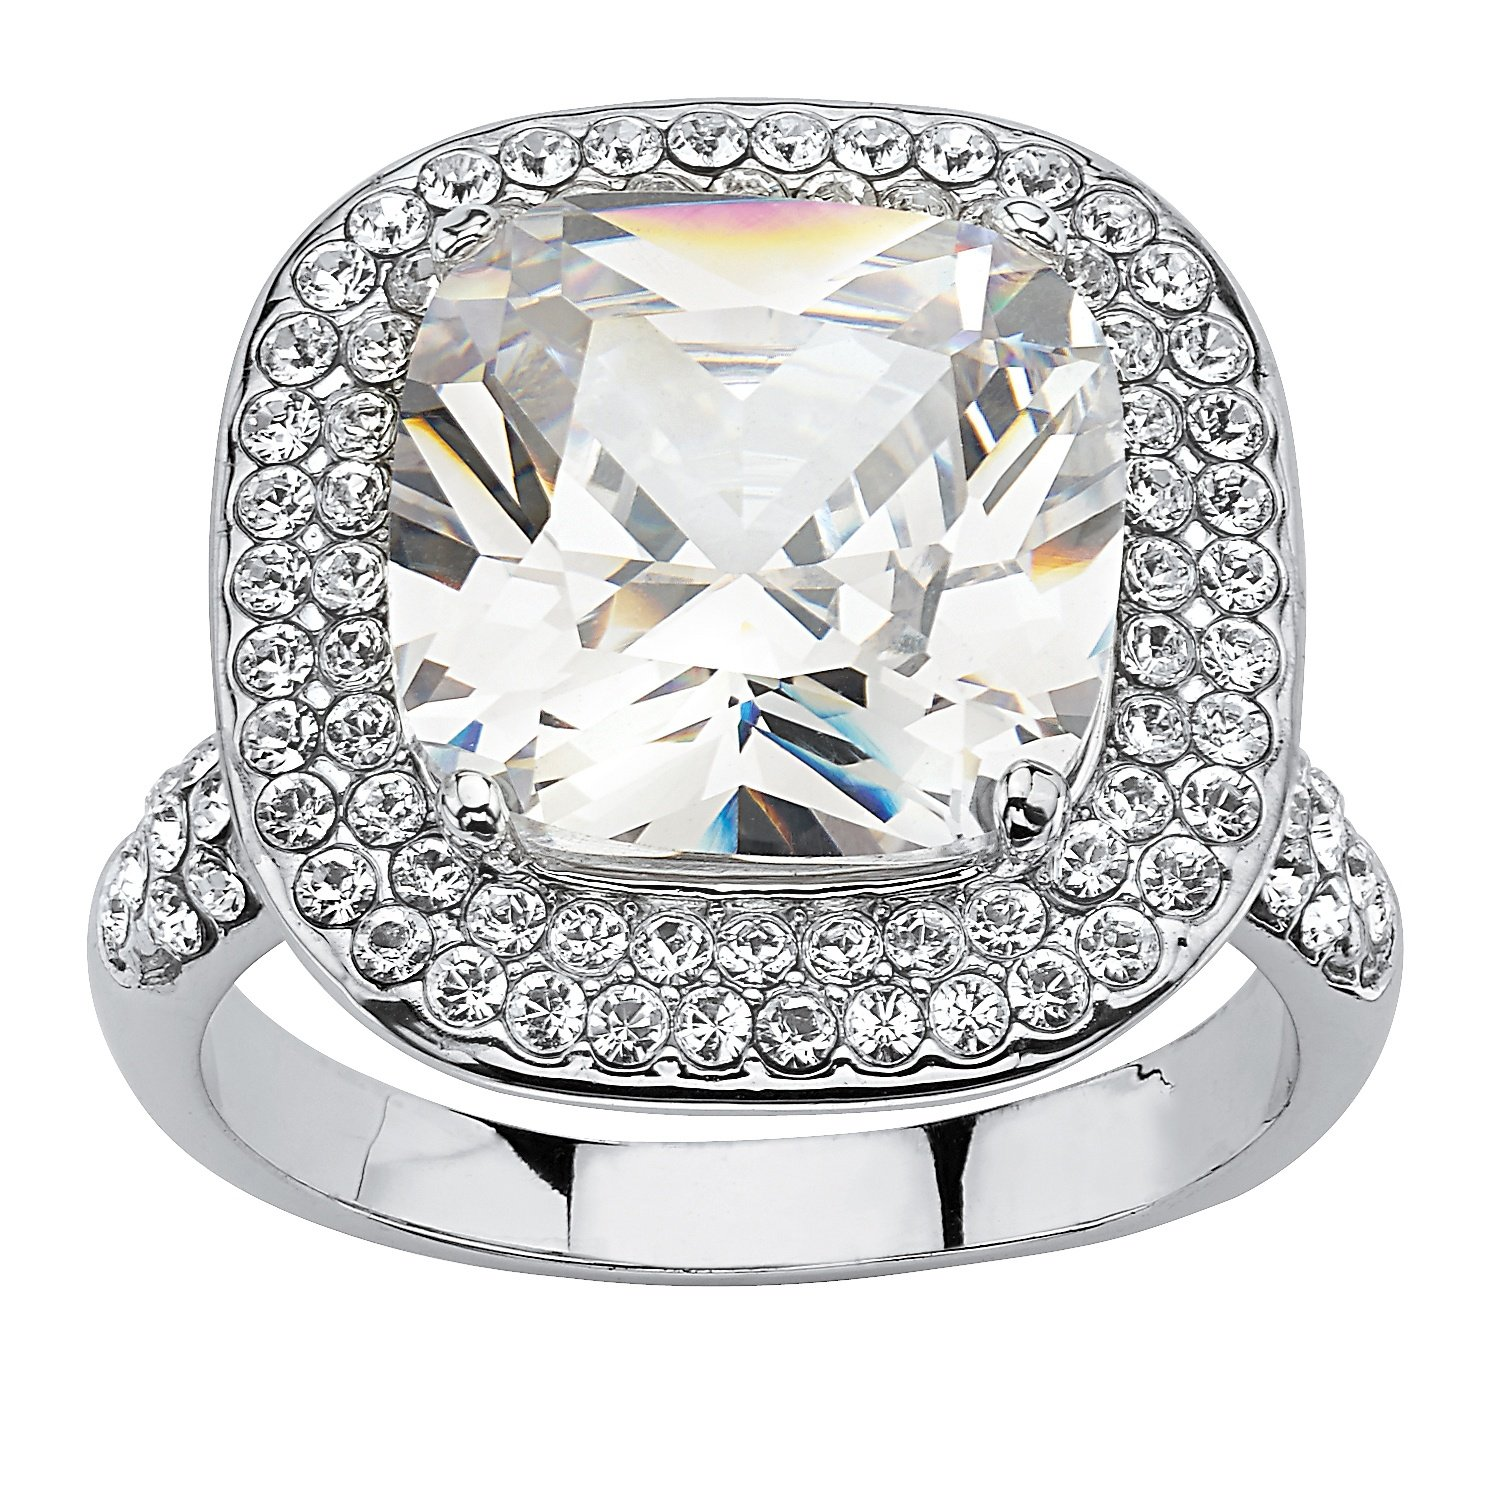 Palm Beach Jewelry Platinum-Plated Cushion Cut Cubic Zirconia Crystal Accent Halo Engagement Anniversary Ring Size 9